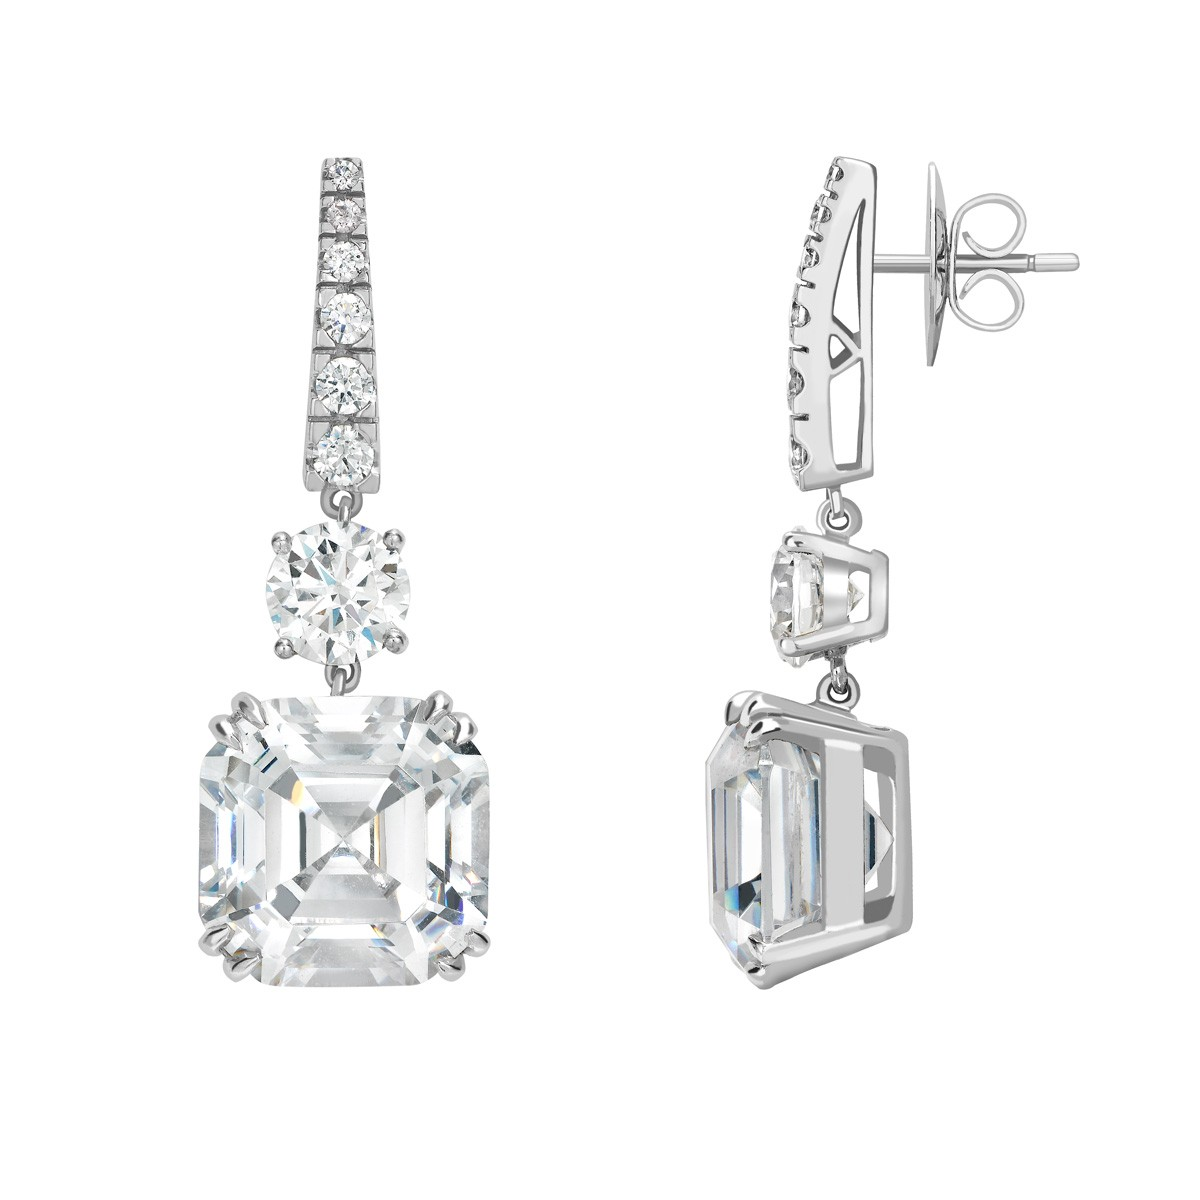 Radiant Ear Studs - Riverton Diamonds in White Gold